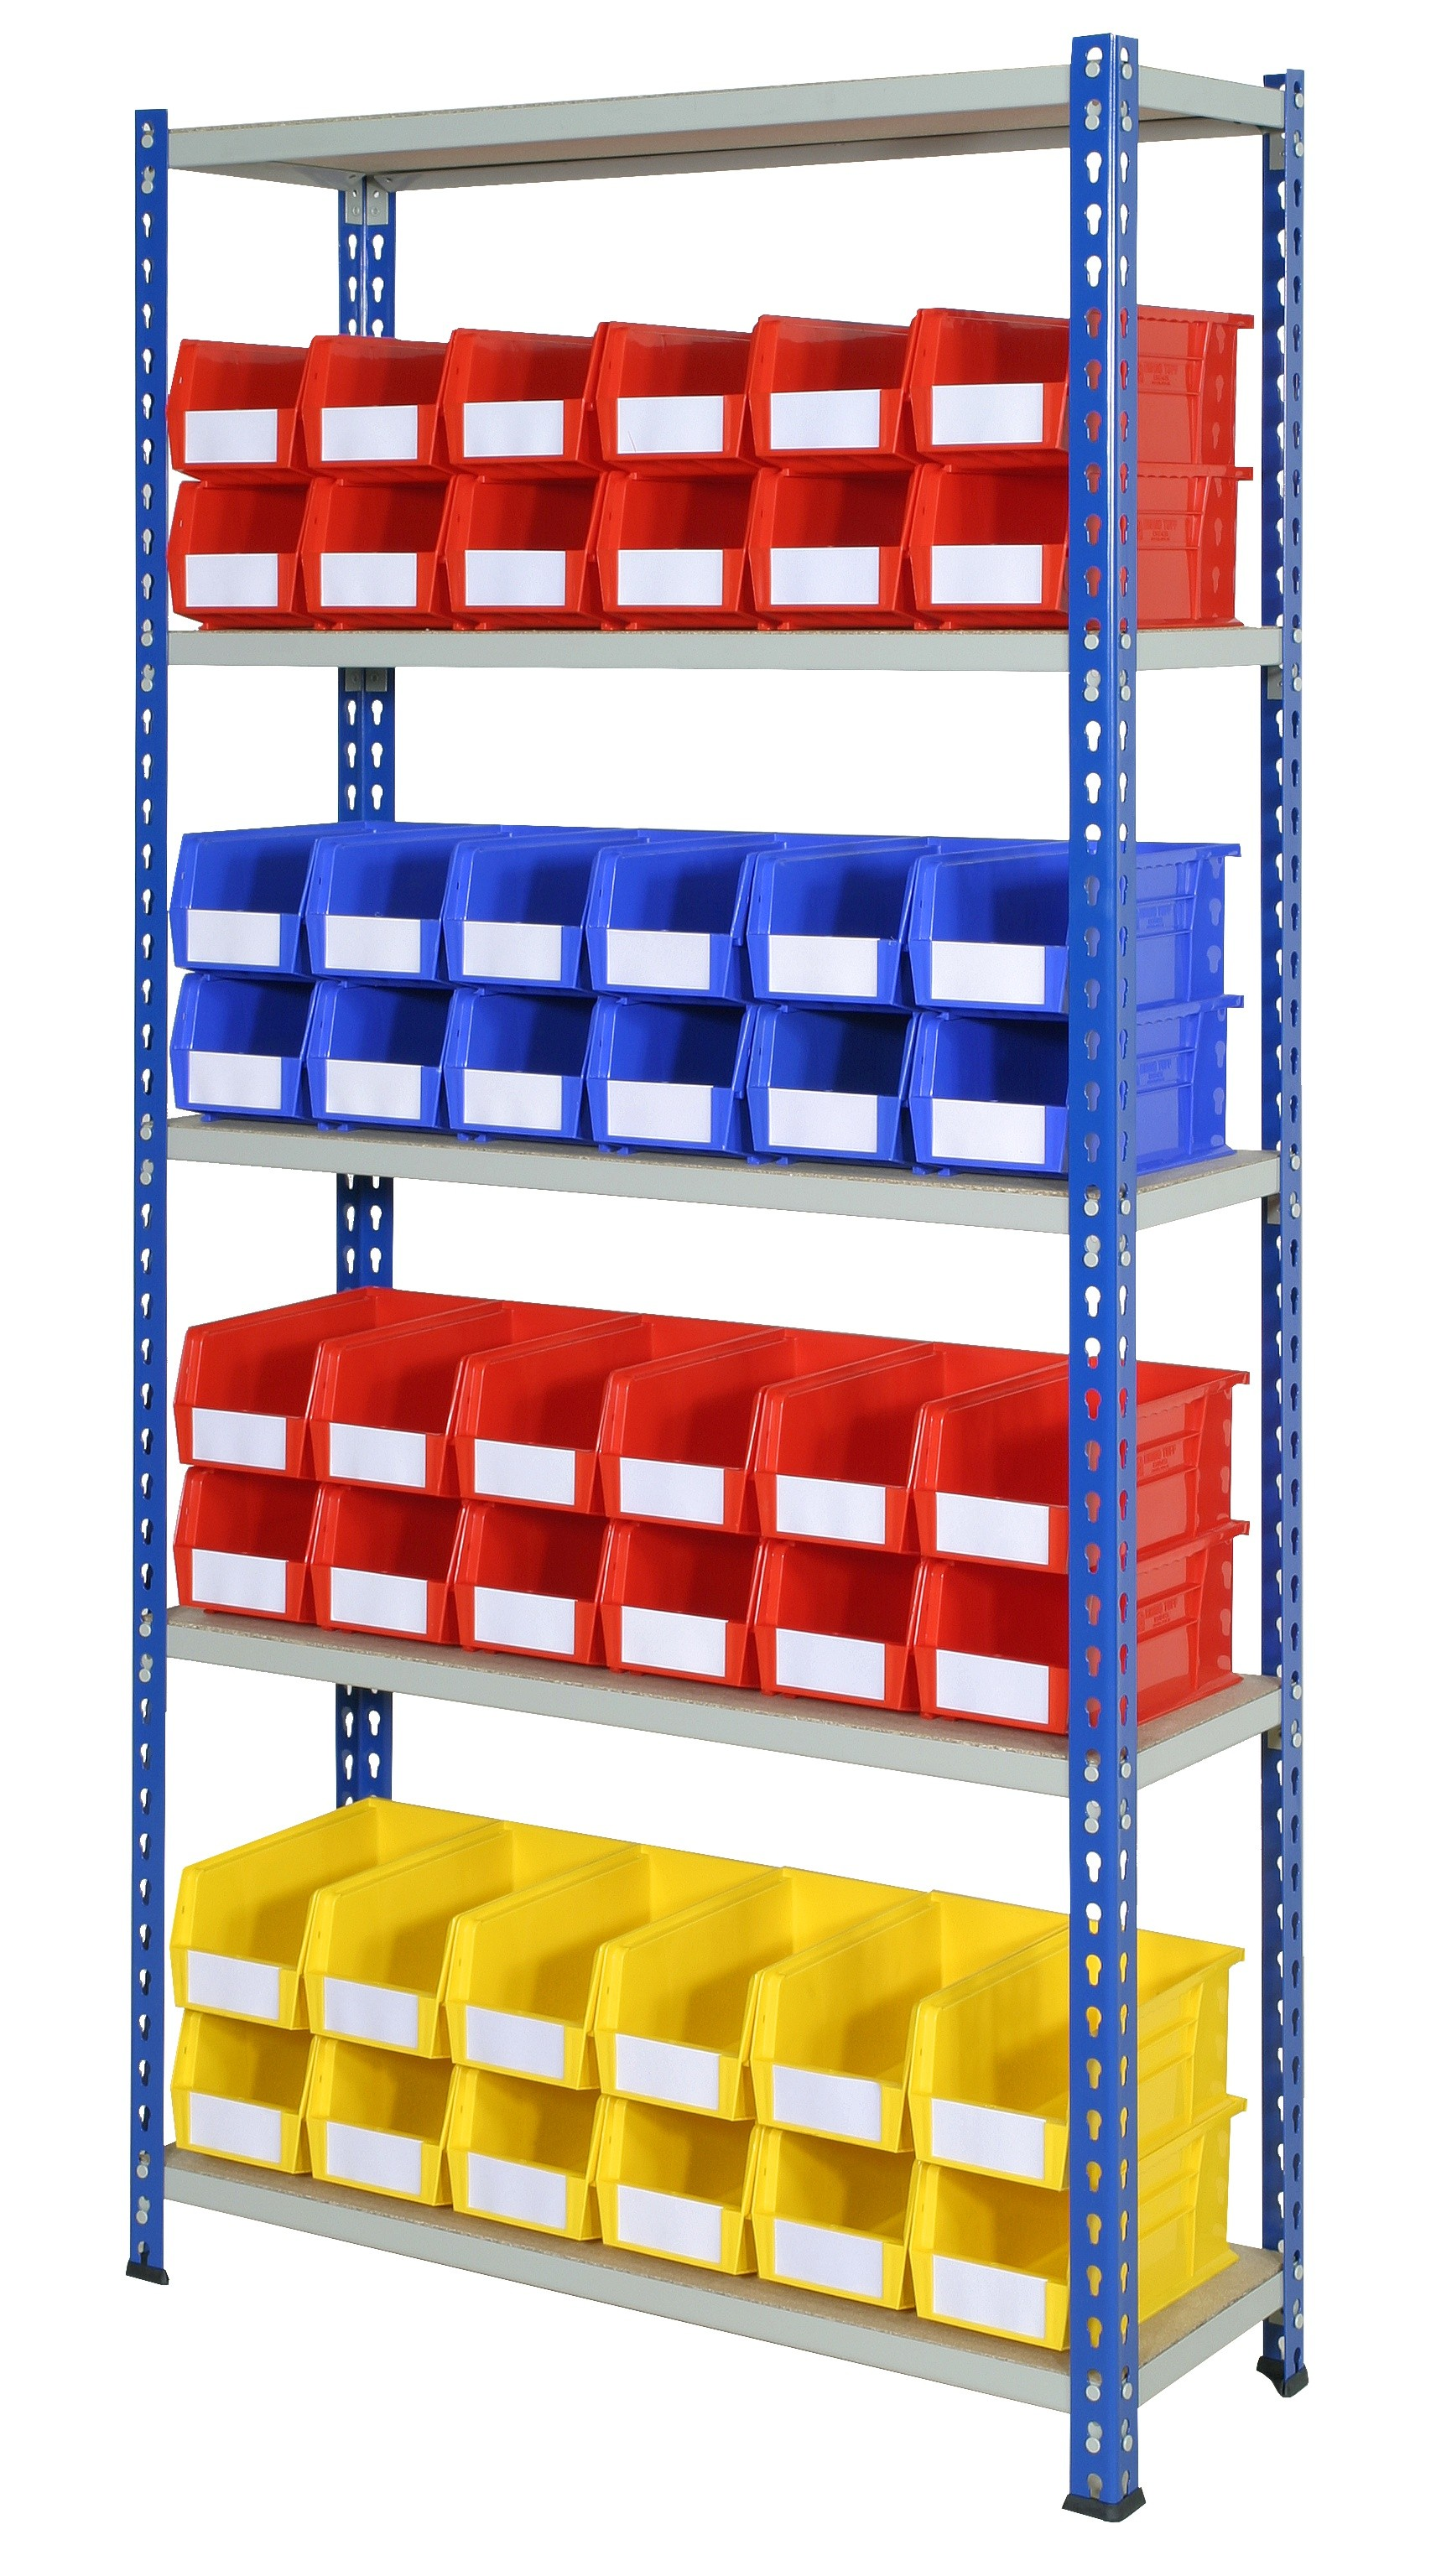 Rivet Bays with Plastic Bins - Option A